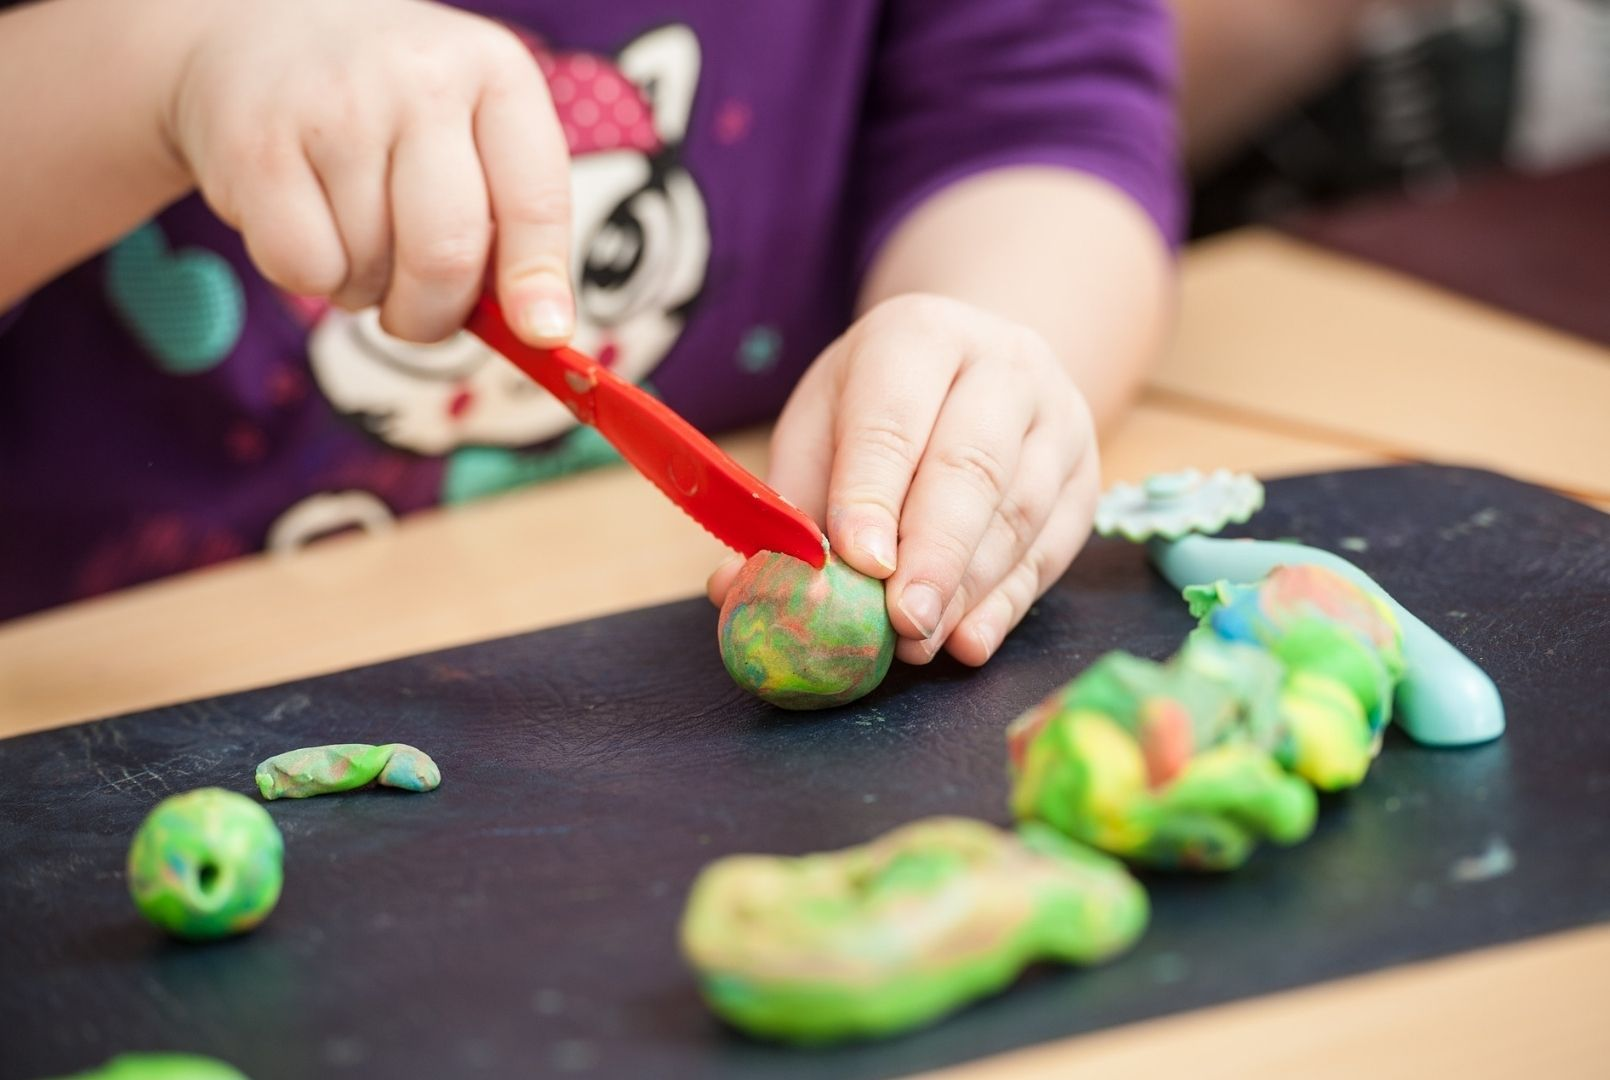 A child's hands rolling and cutting balls of playdough